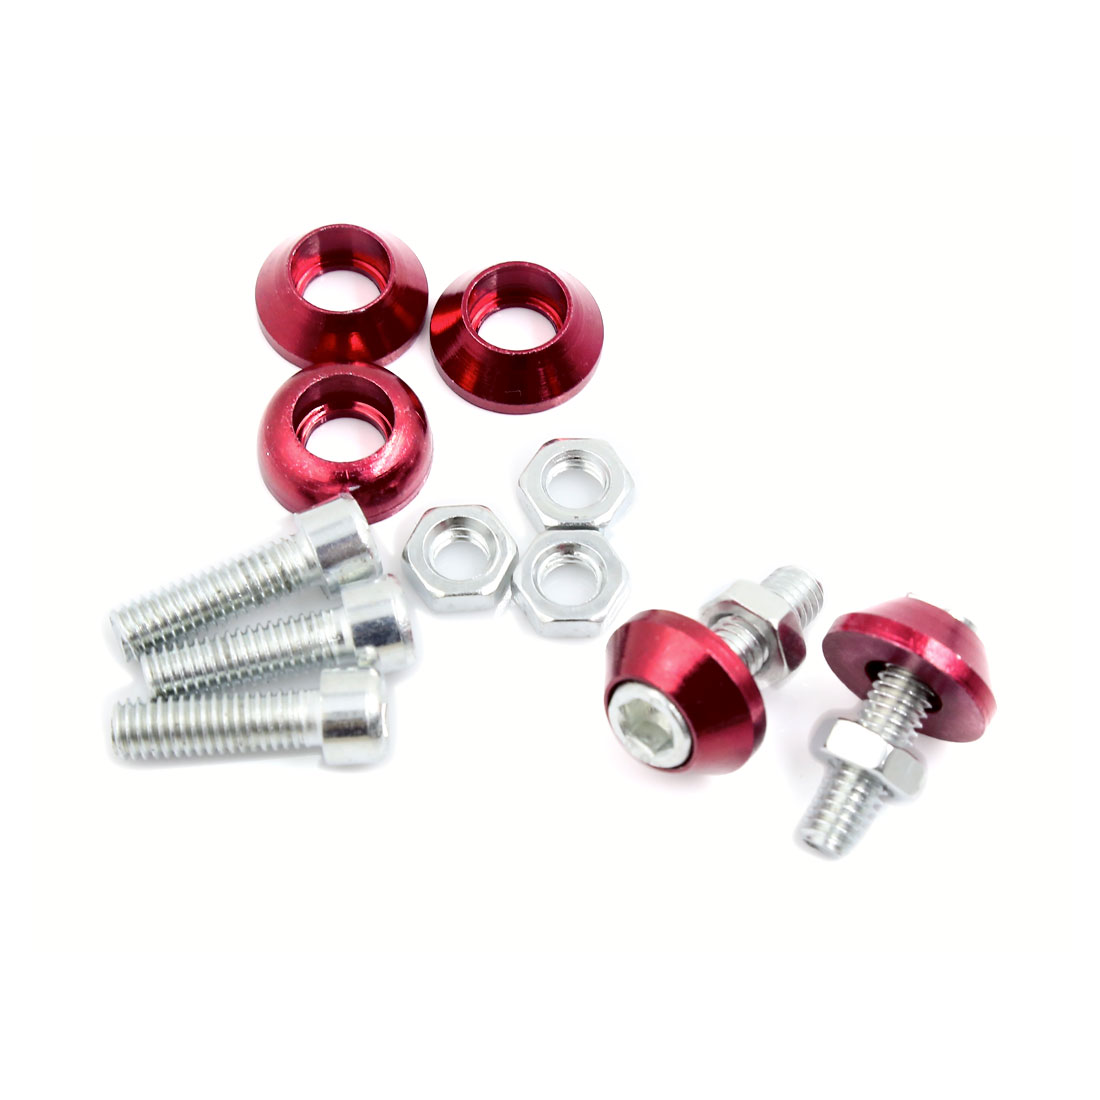 5 Pcs 6mm Thread Dia License Plate Frame Bolts Screws Red for Motorcycle Truck